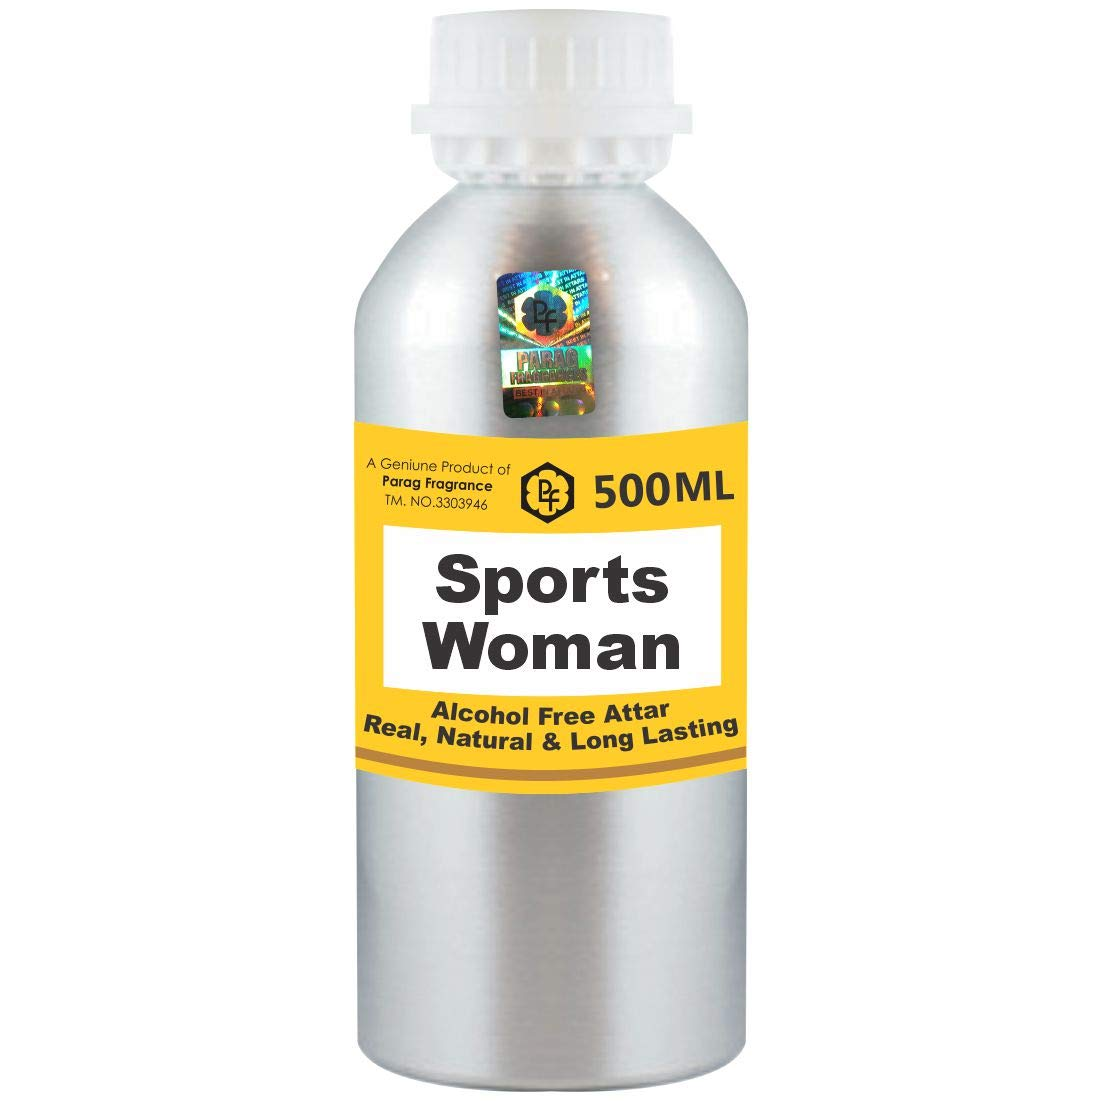 Parag Fragrances Sports Woman Pack Cheap super special price Attar 500ml Max 78% OFF Wholesale